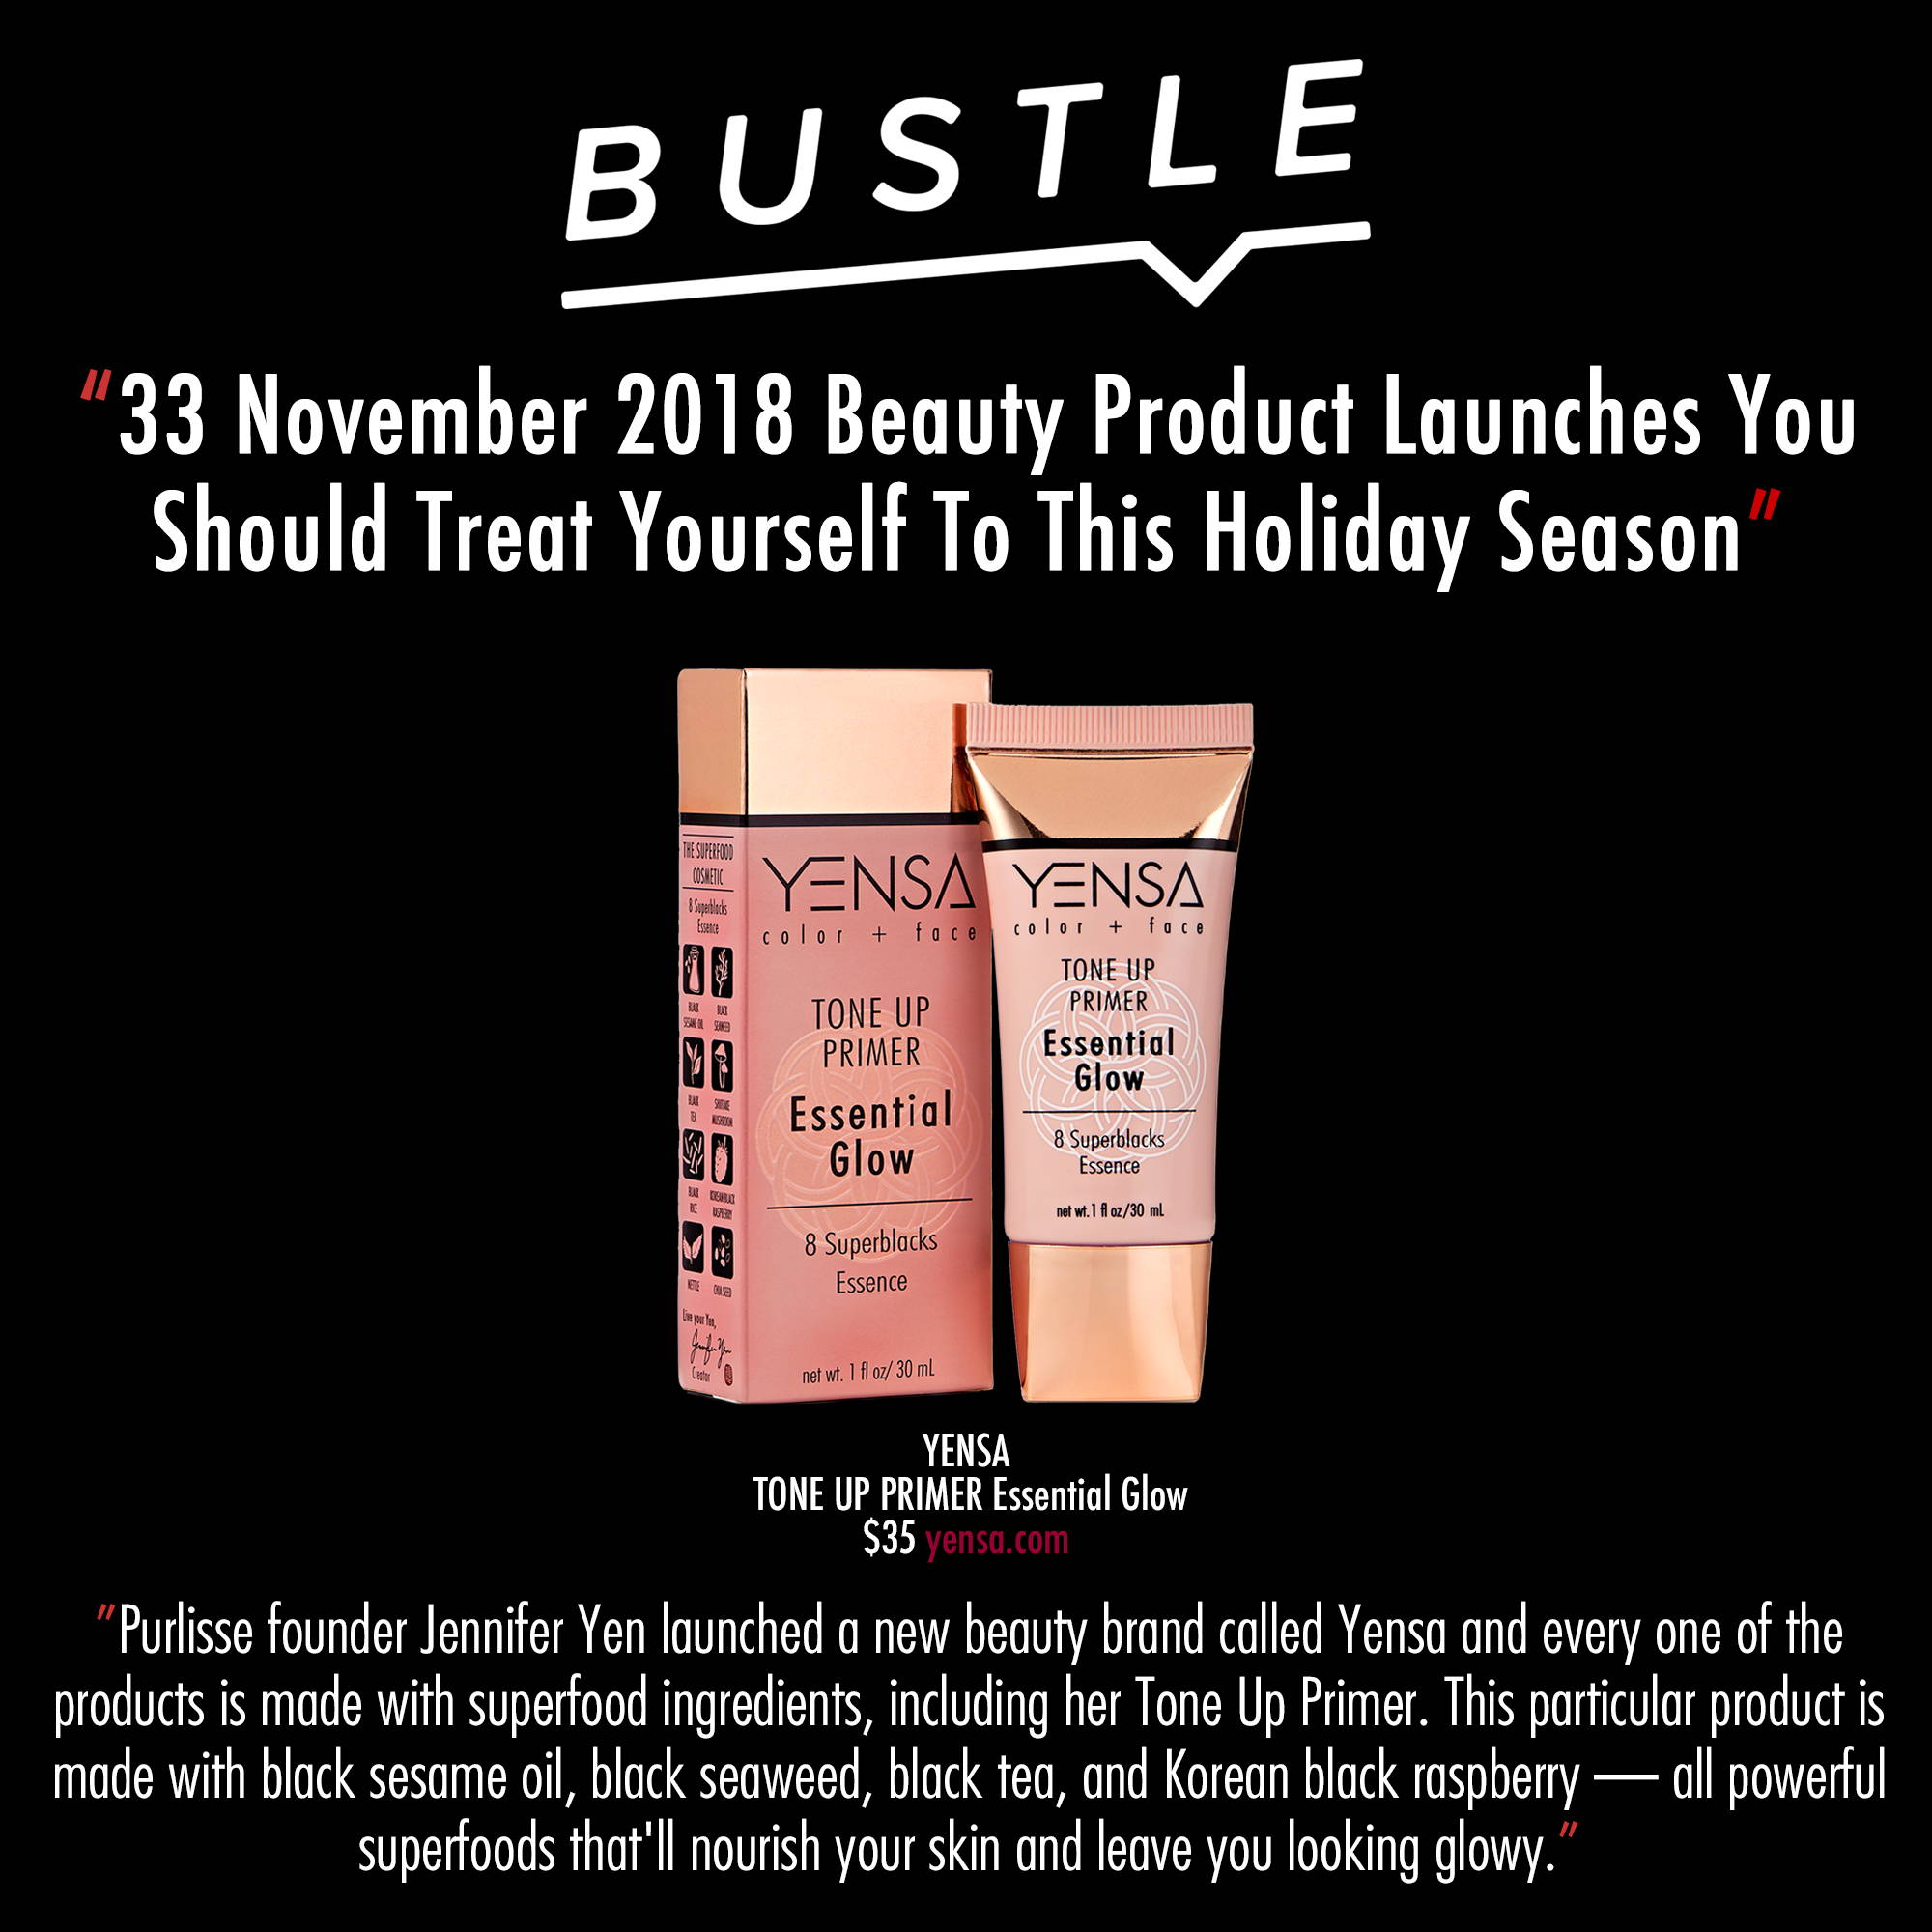 BUSTLE Press